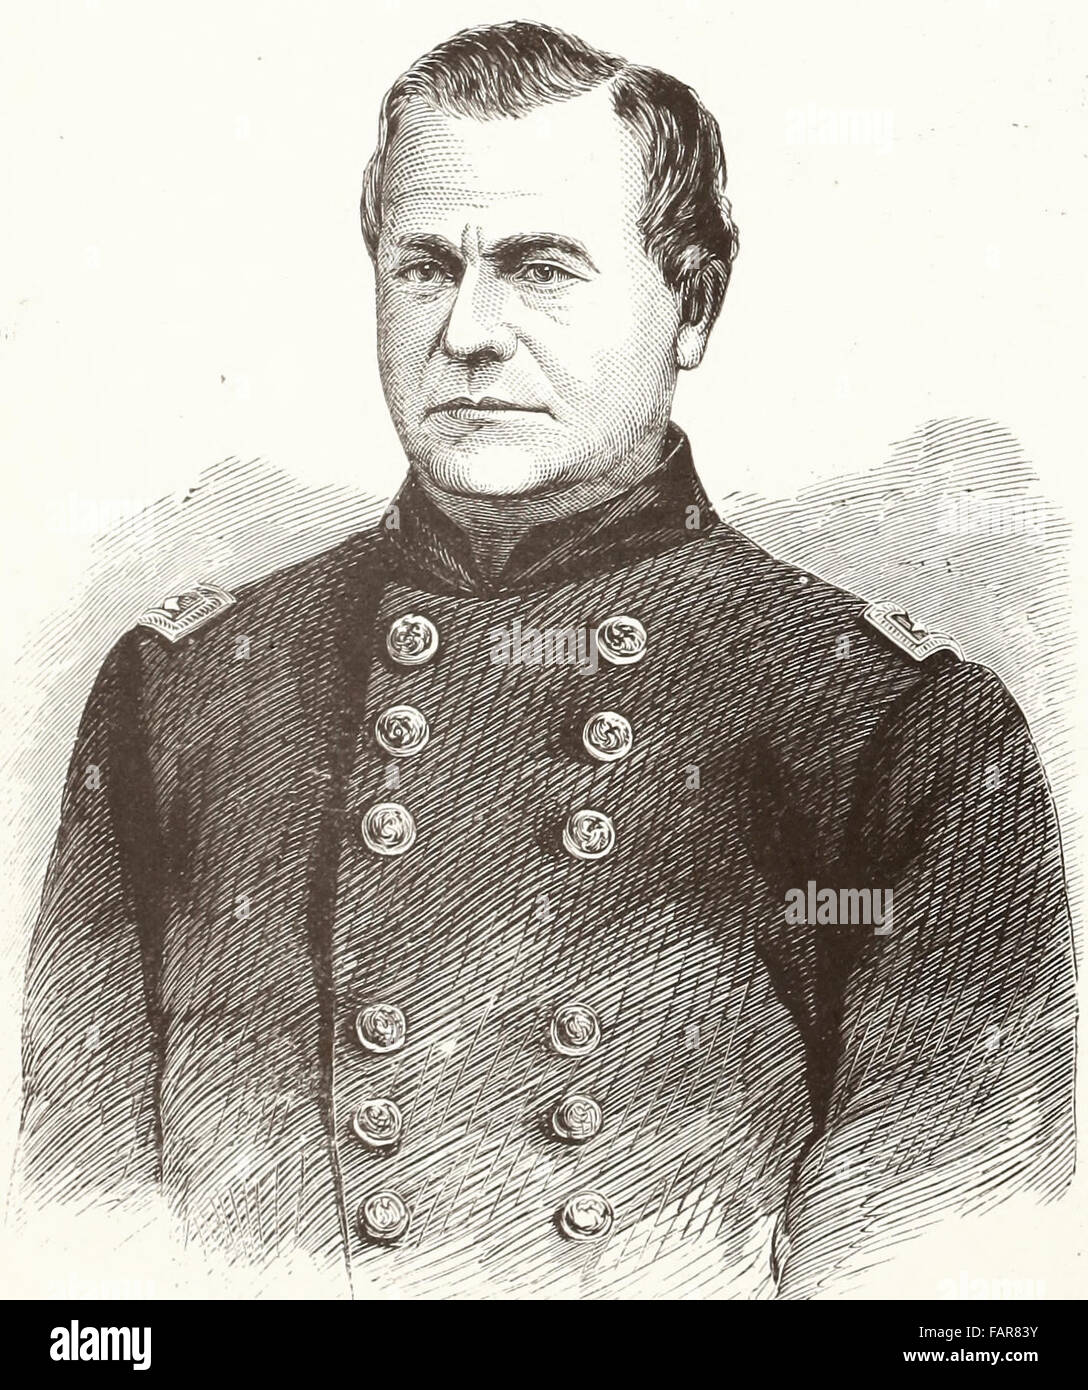 General Richard James Oglesby (July 25, 1824 – April 24, 1899) was an American soldier and Republican politician - Stock Image